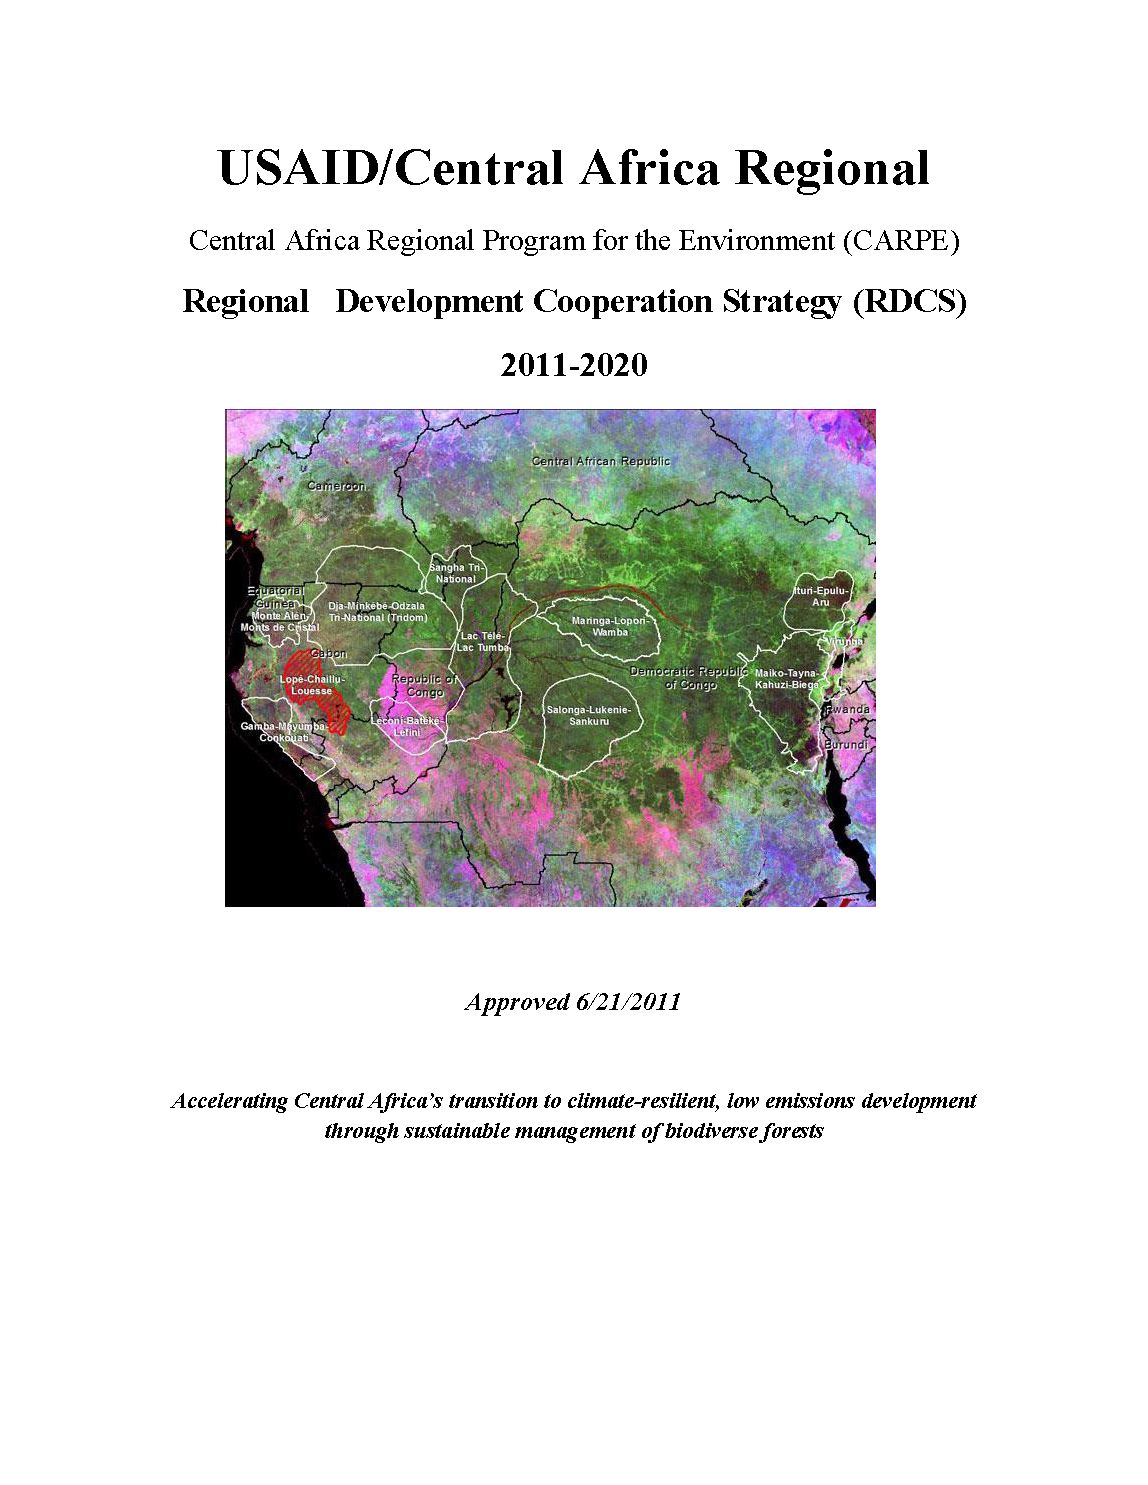 USAID/Central Africa Regional Program for the Environment (CARPE) Regional Development Cooperation Strategy 2011-2020